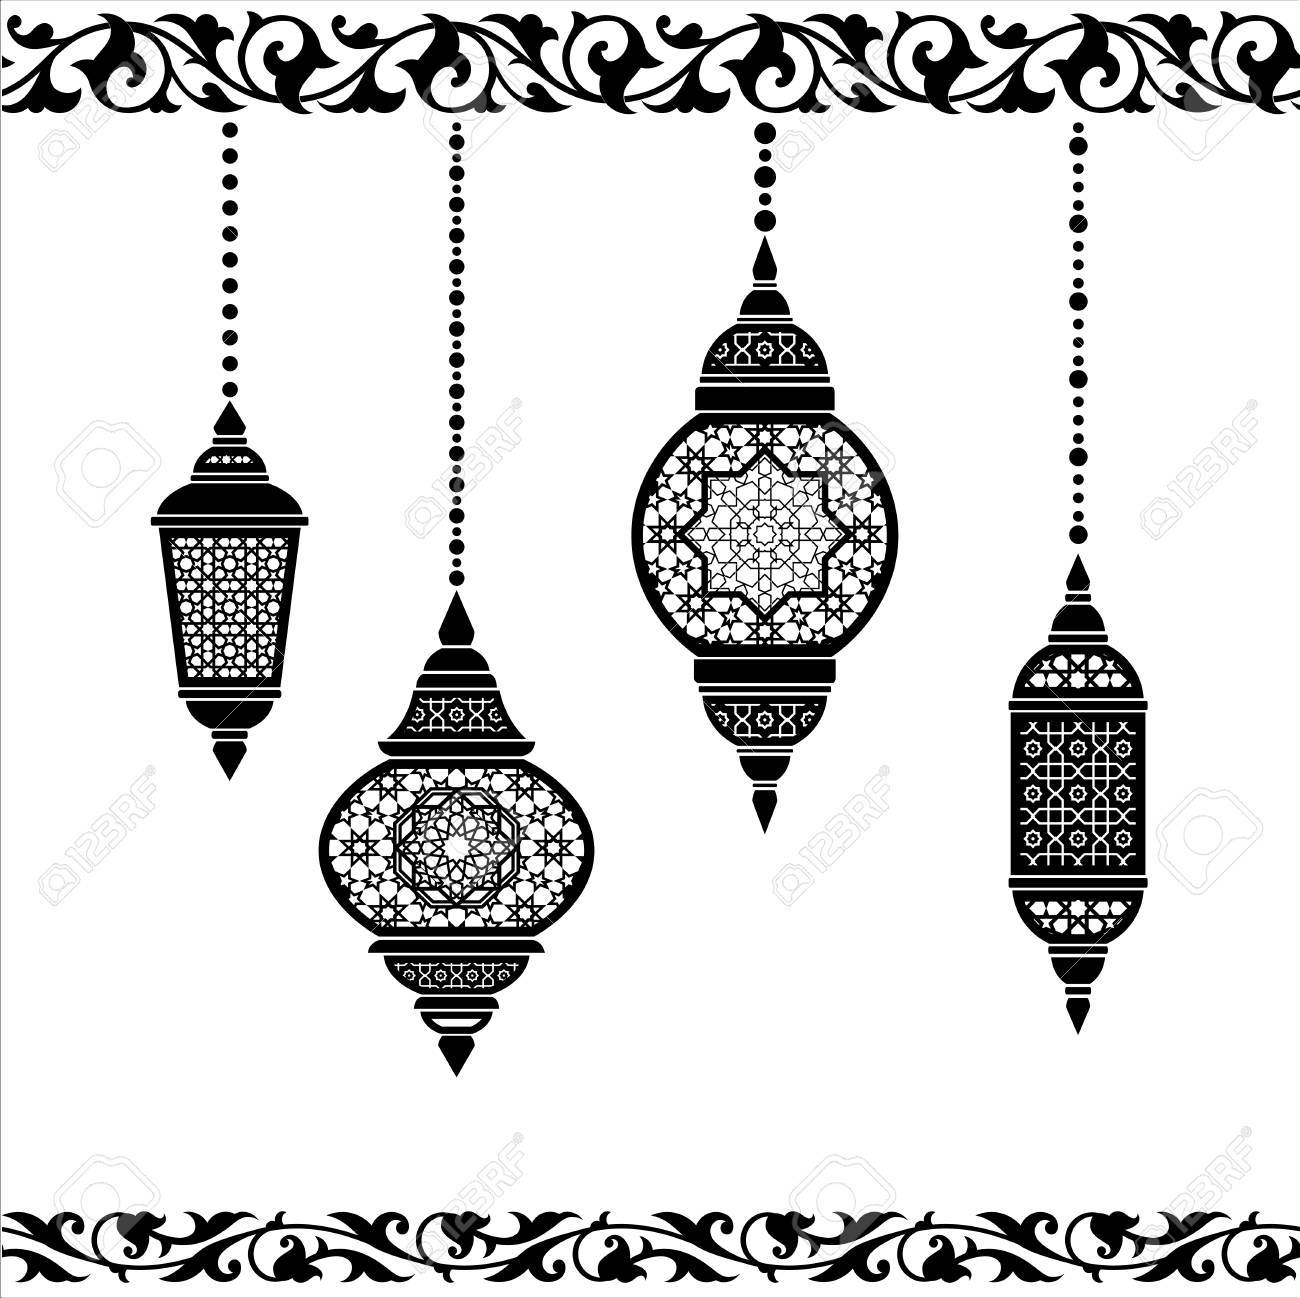 ramadan lantern pattern  Ramadan lantern in black and white. Greeting card template